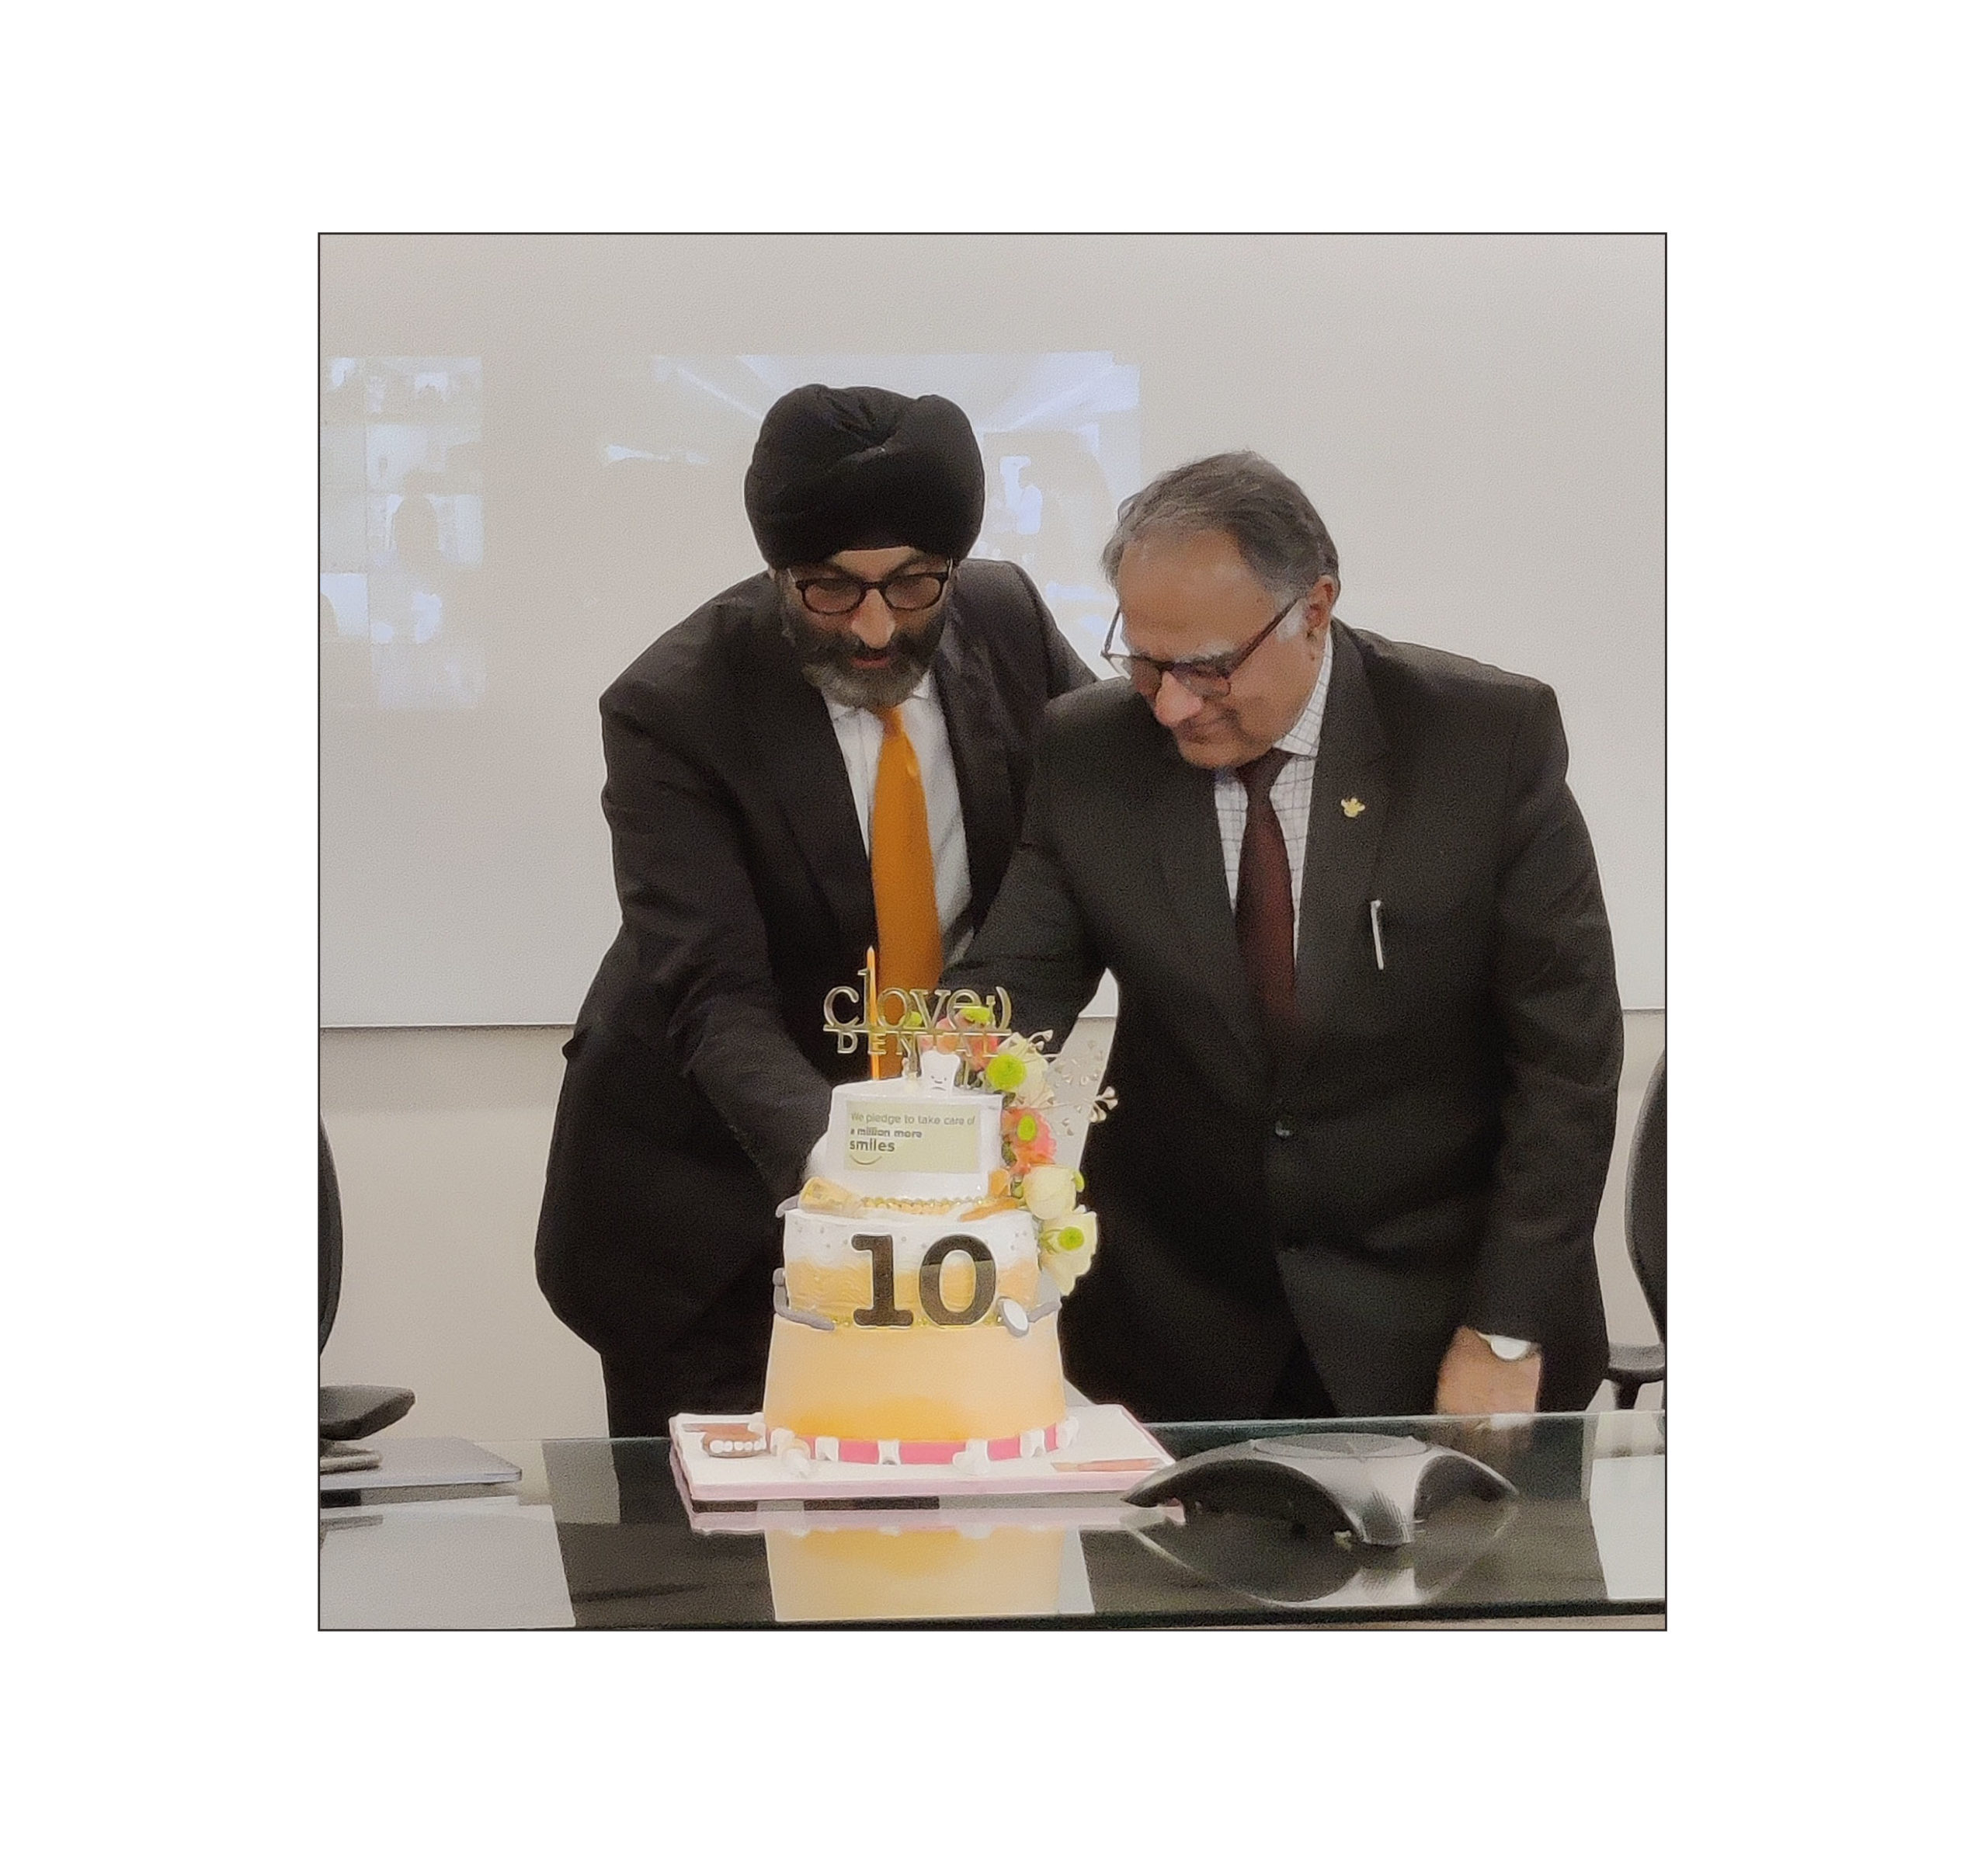 Clove Dental, India's Largest Dental Group, celebrates 10 Yearsof Dedicated Serviceto over10 lakh patients